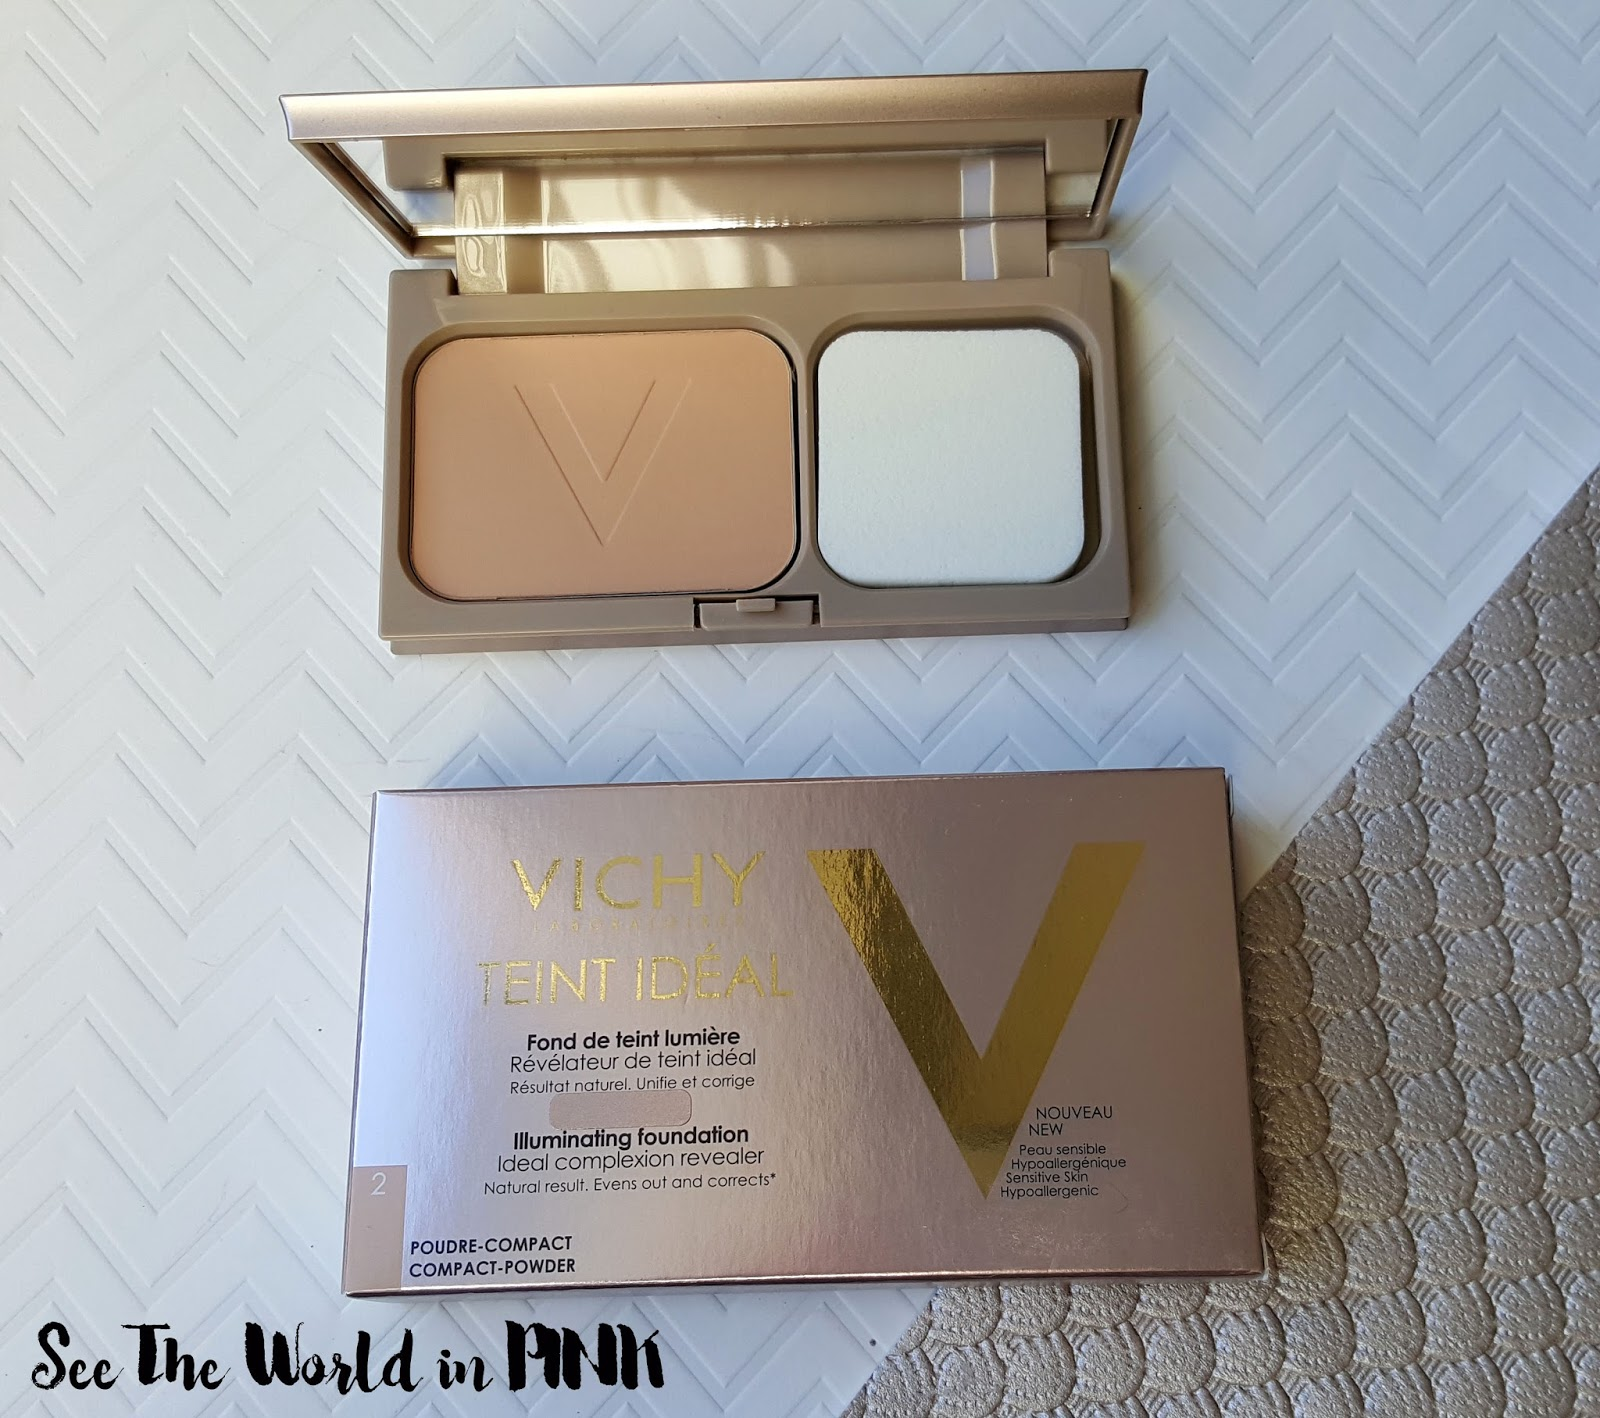 Vichy Teint Ideal Makeup - Swatches and Reviews!  compact powder